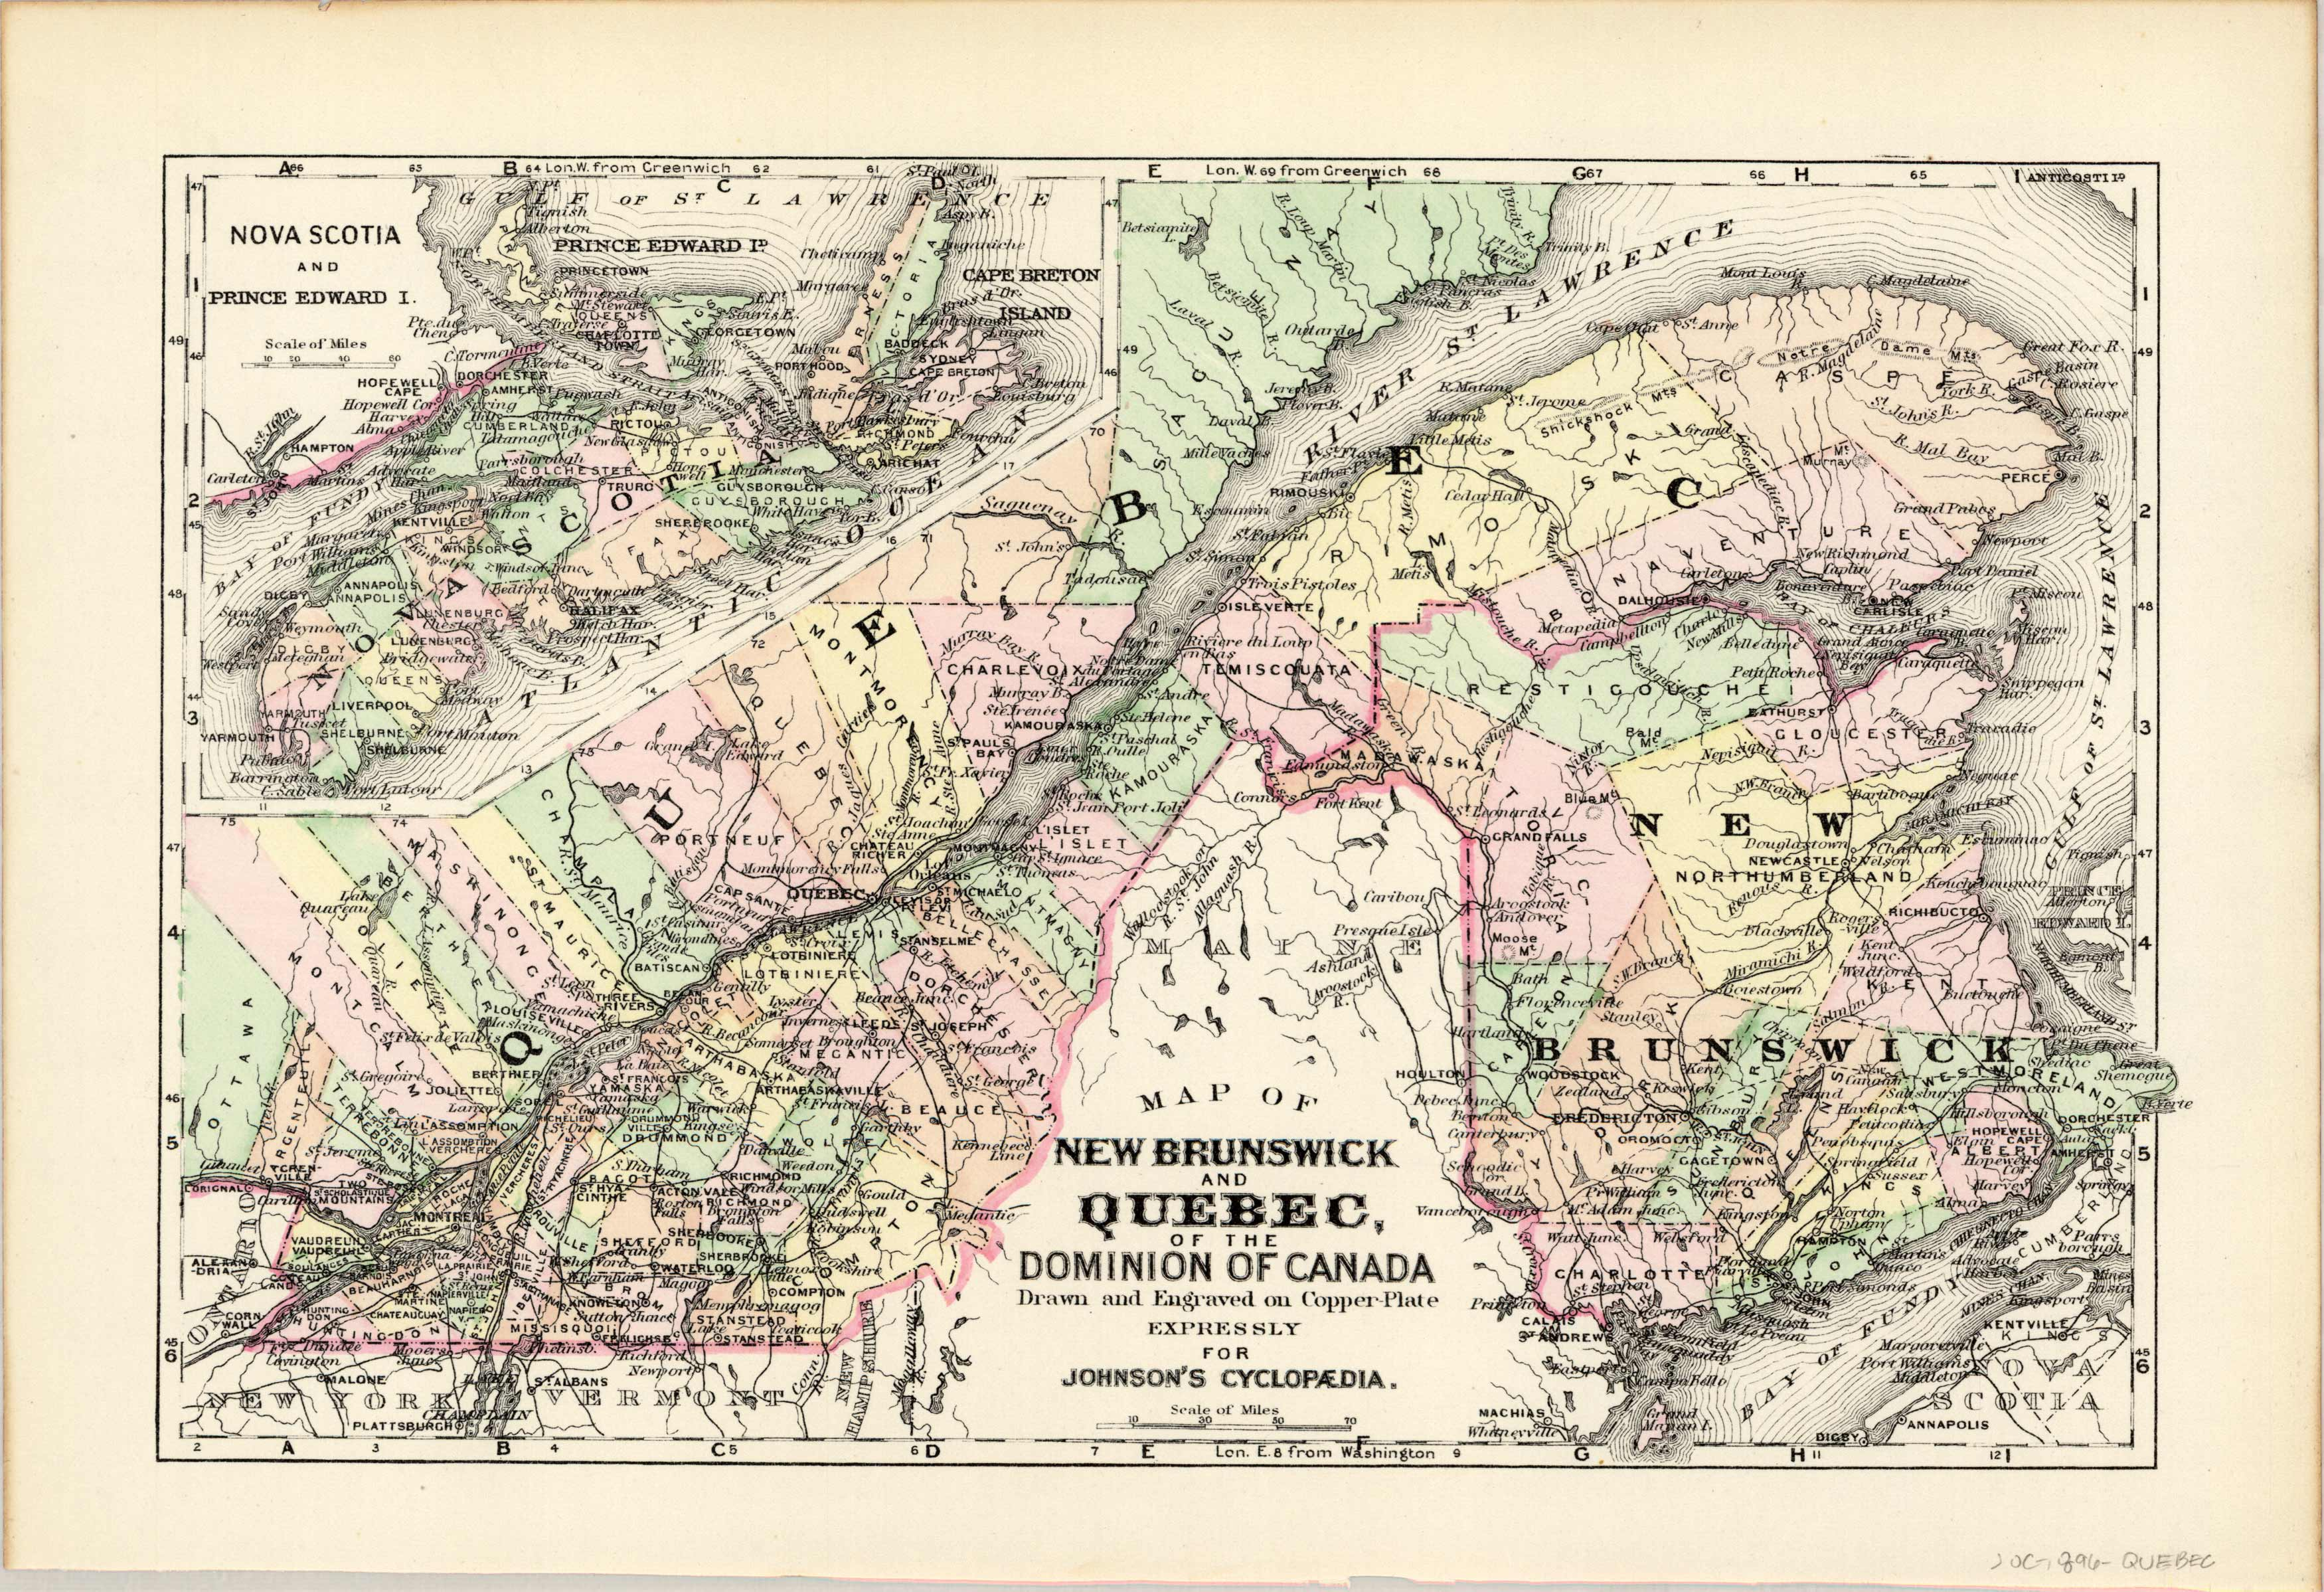 Map of New Brunswick and Quebec of the Dominion of Canada